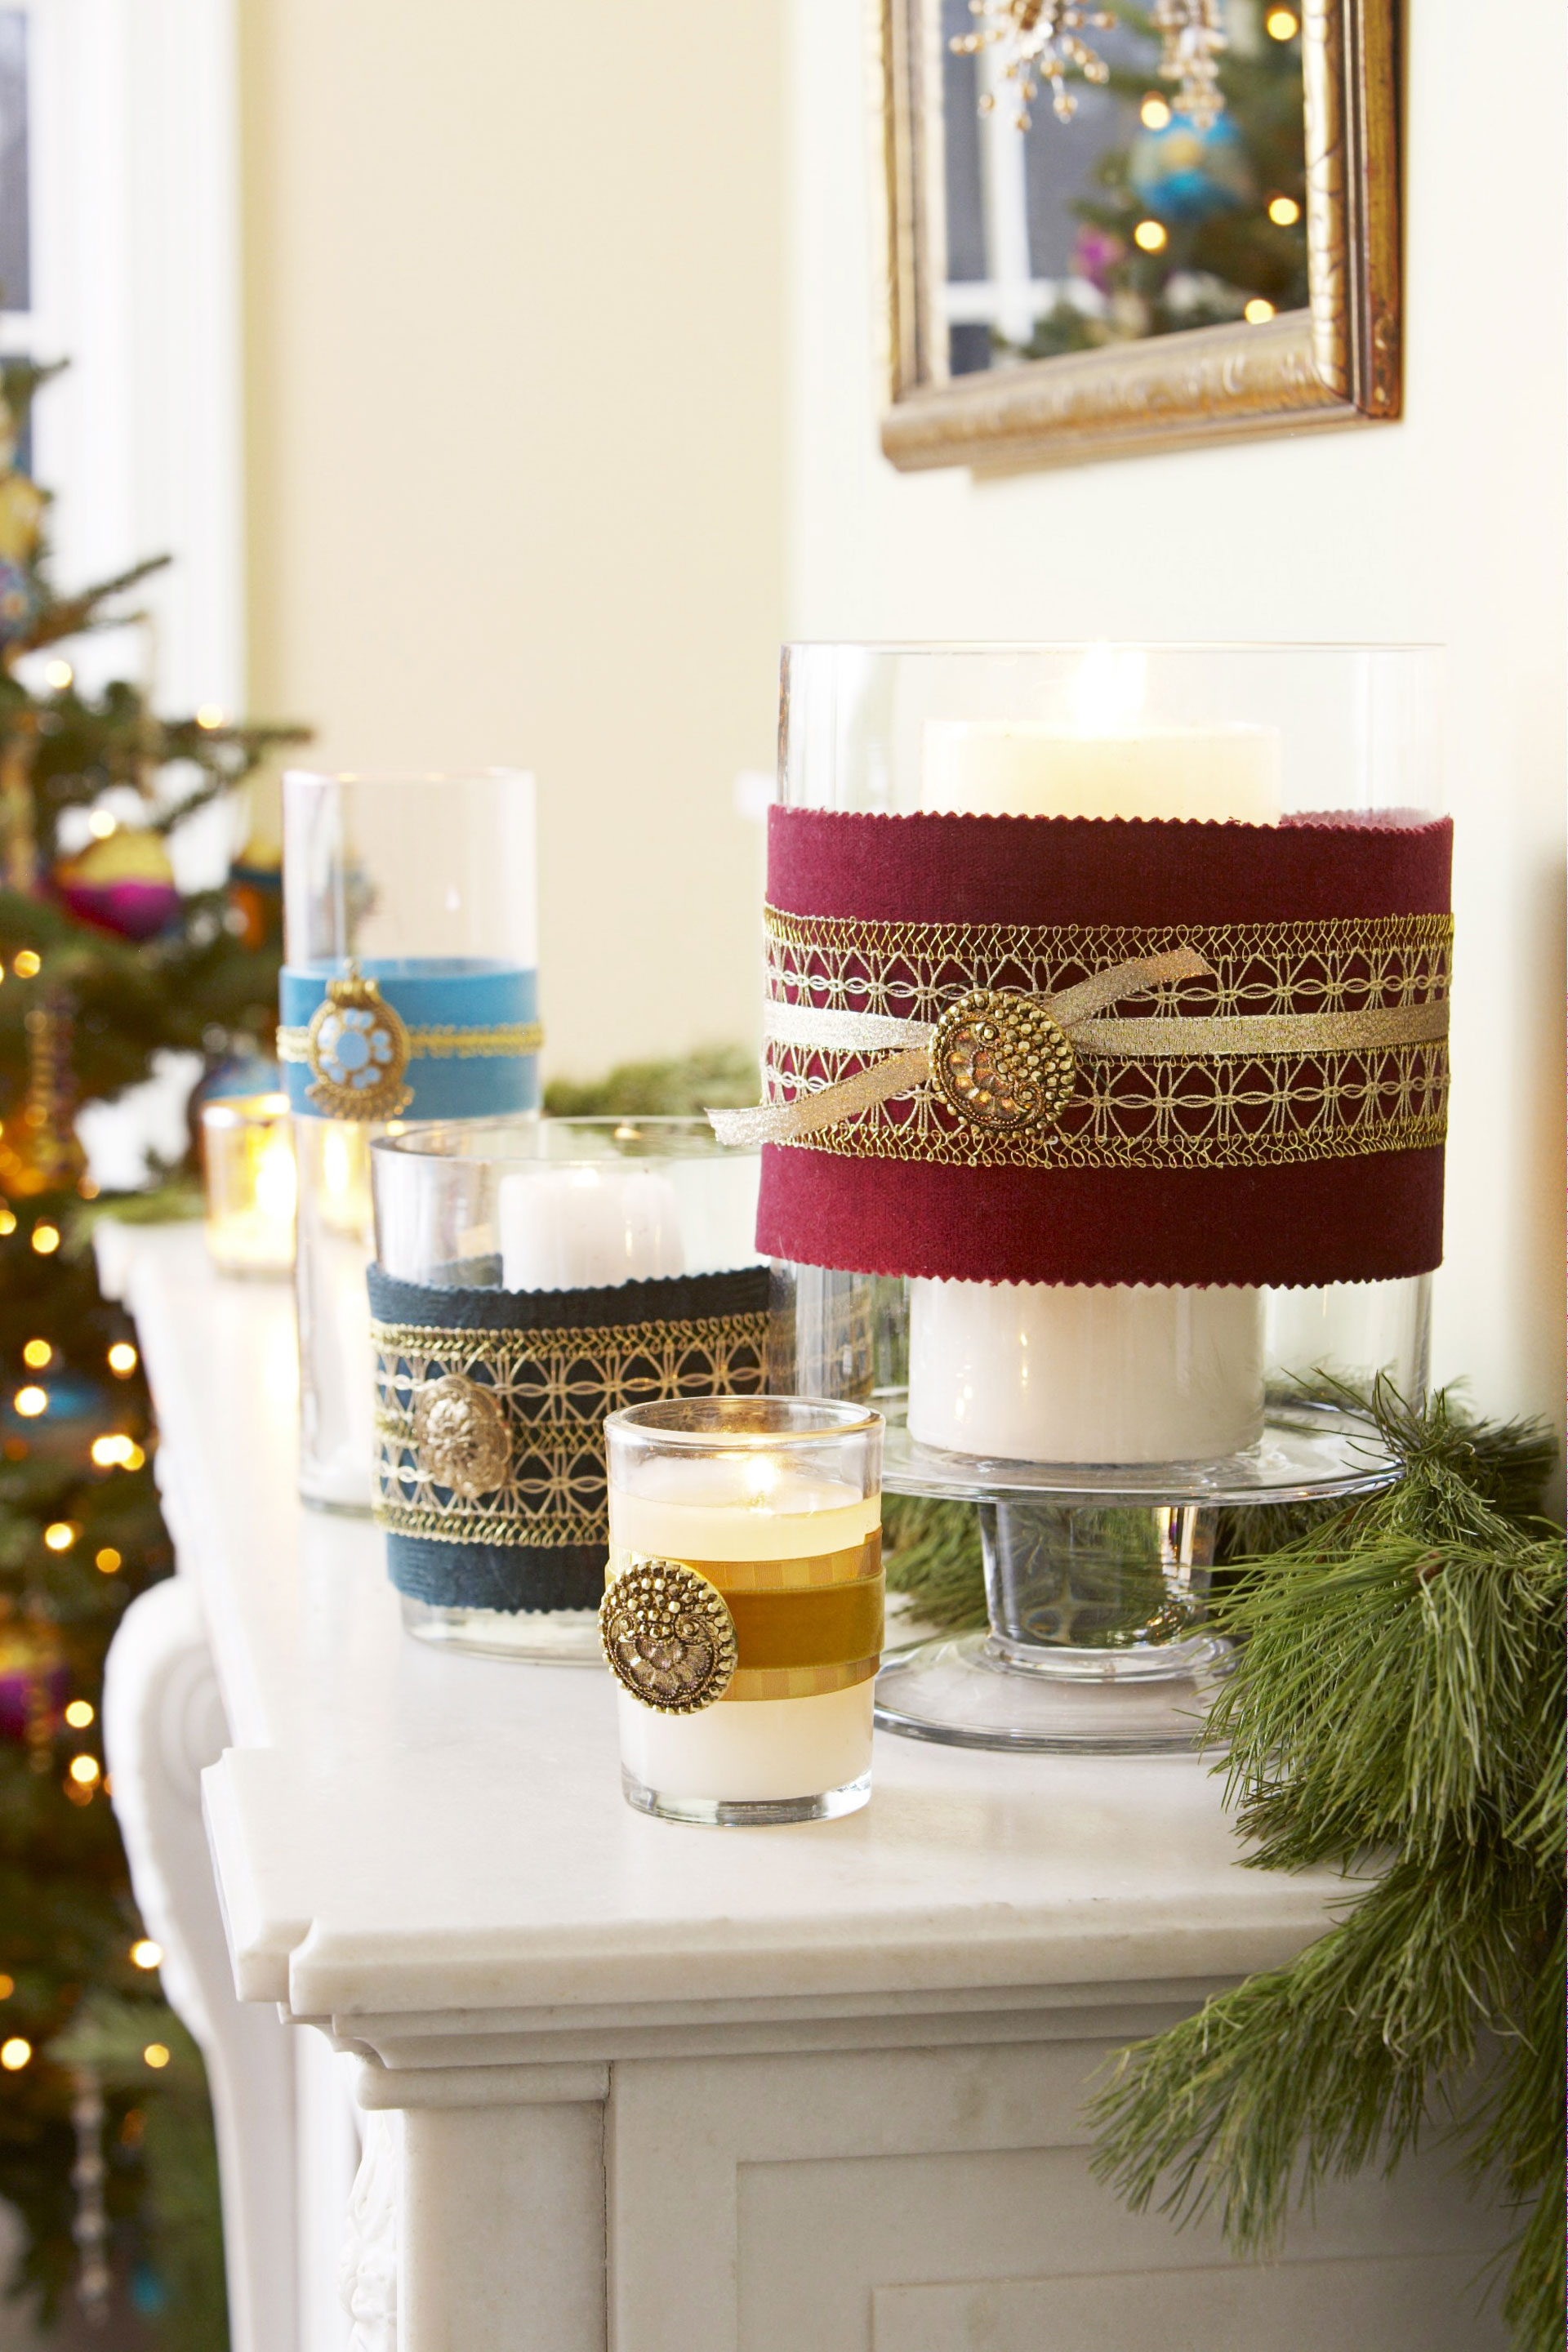 Xmas Decoration Ideas Home Part - 38: Good Housekeeping